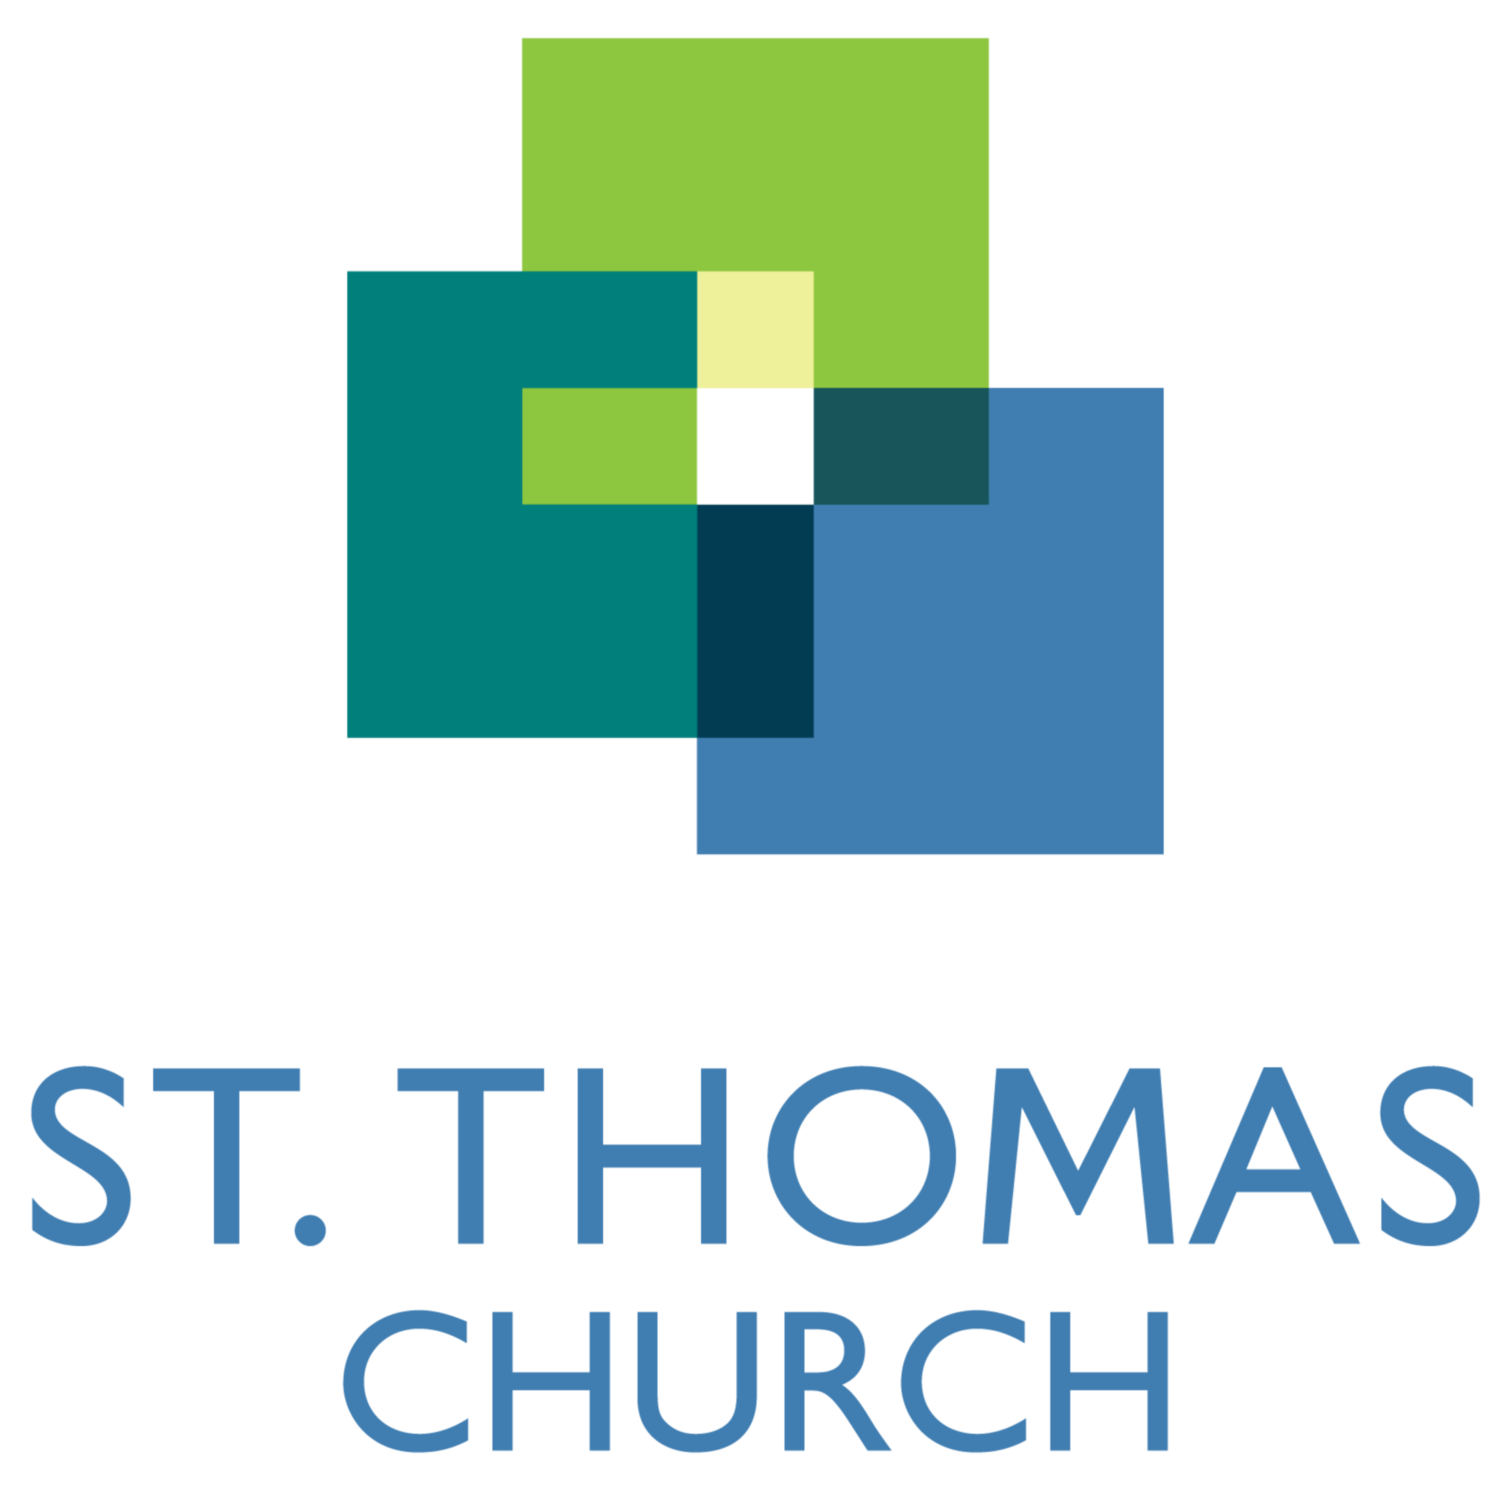 St. Thomas Church: A Warm, Bible-Based, Liturgical Church